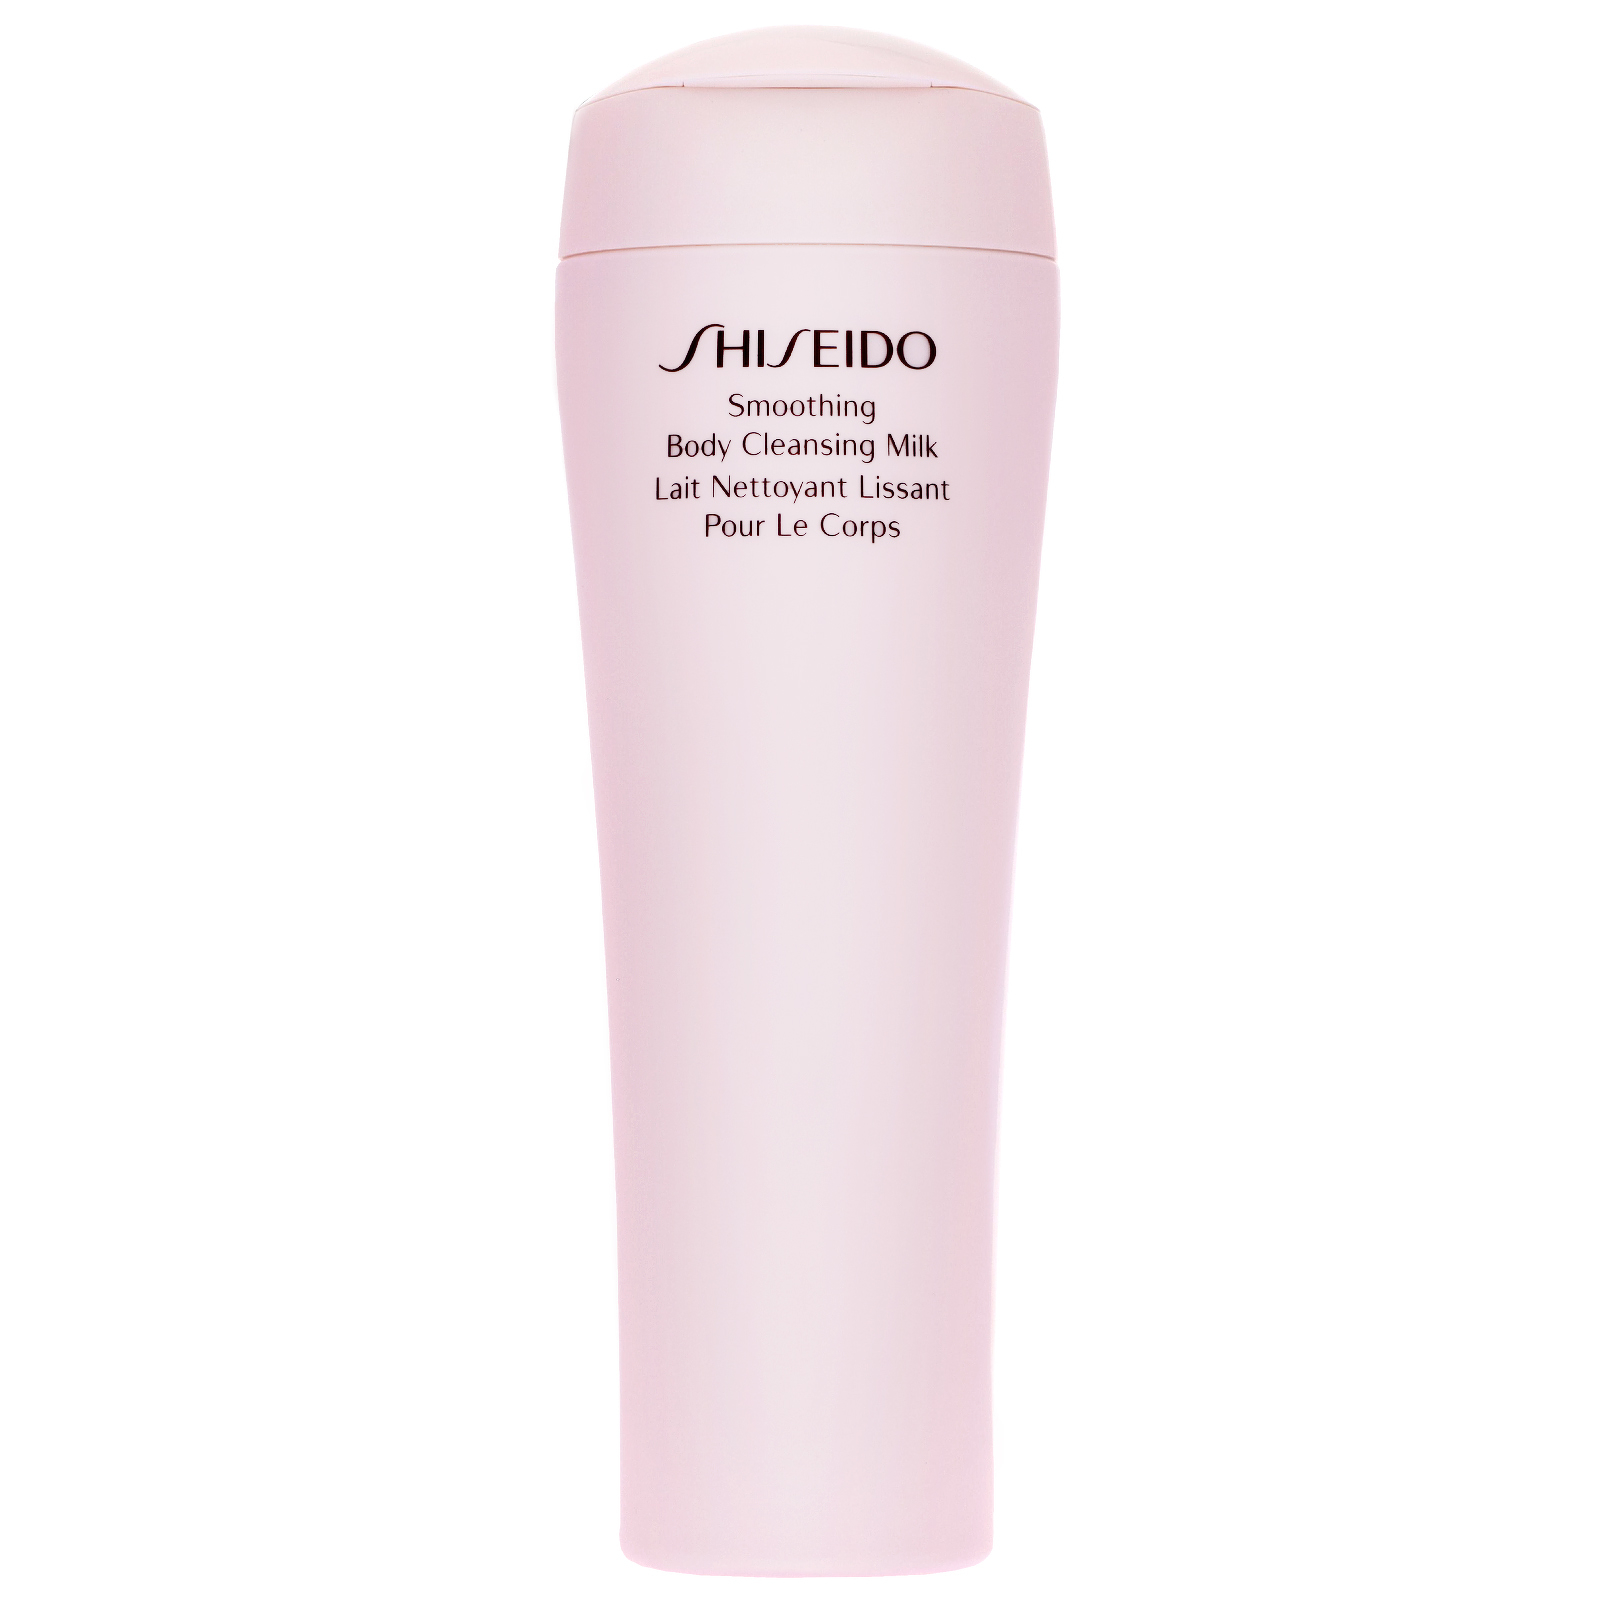 Shiseido Body Care Smoothing Body Cleansing Milk 200ml / 6.7 fl.oz.